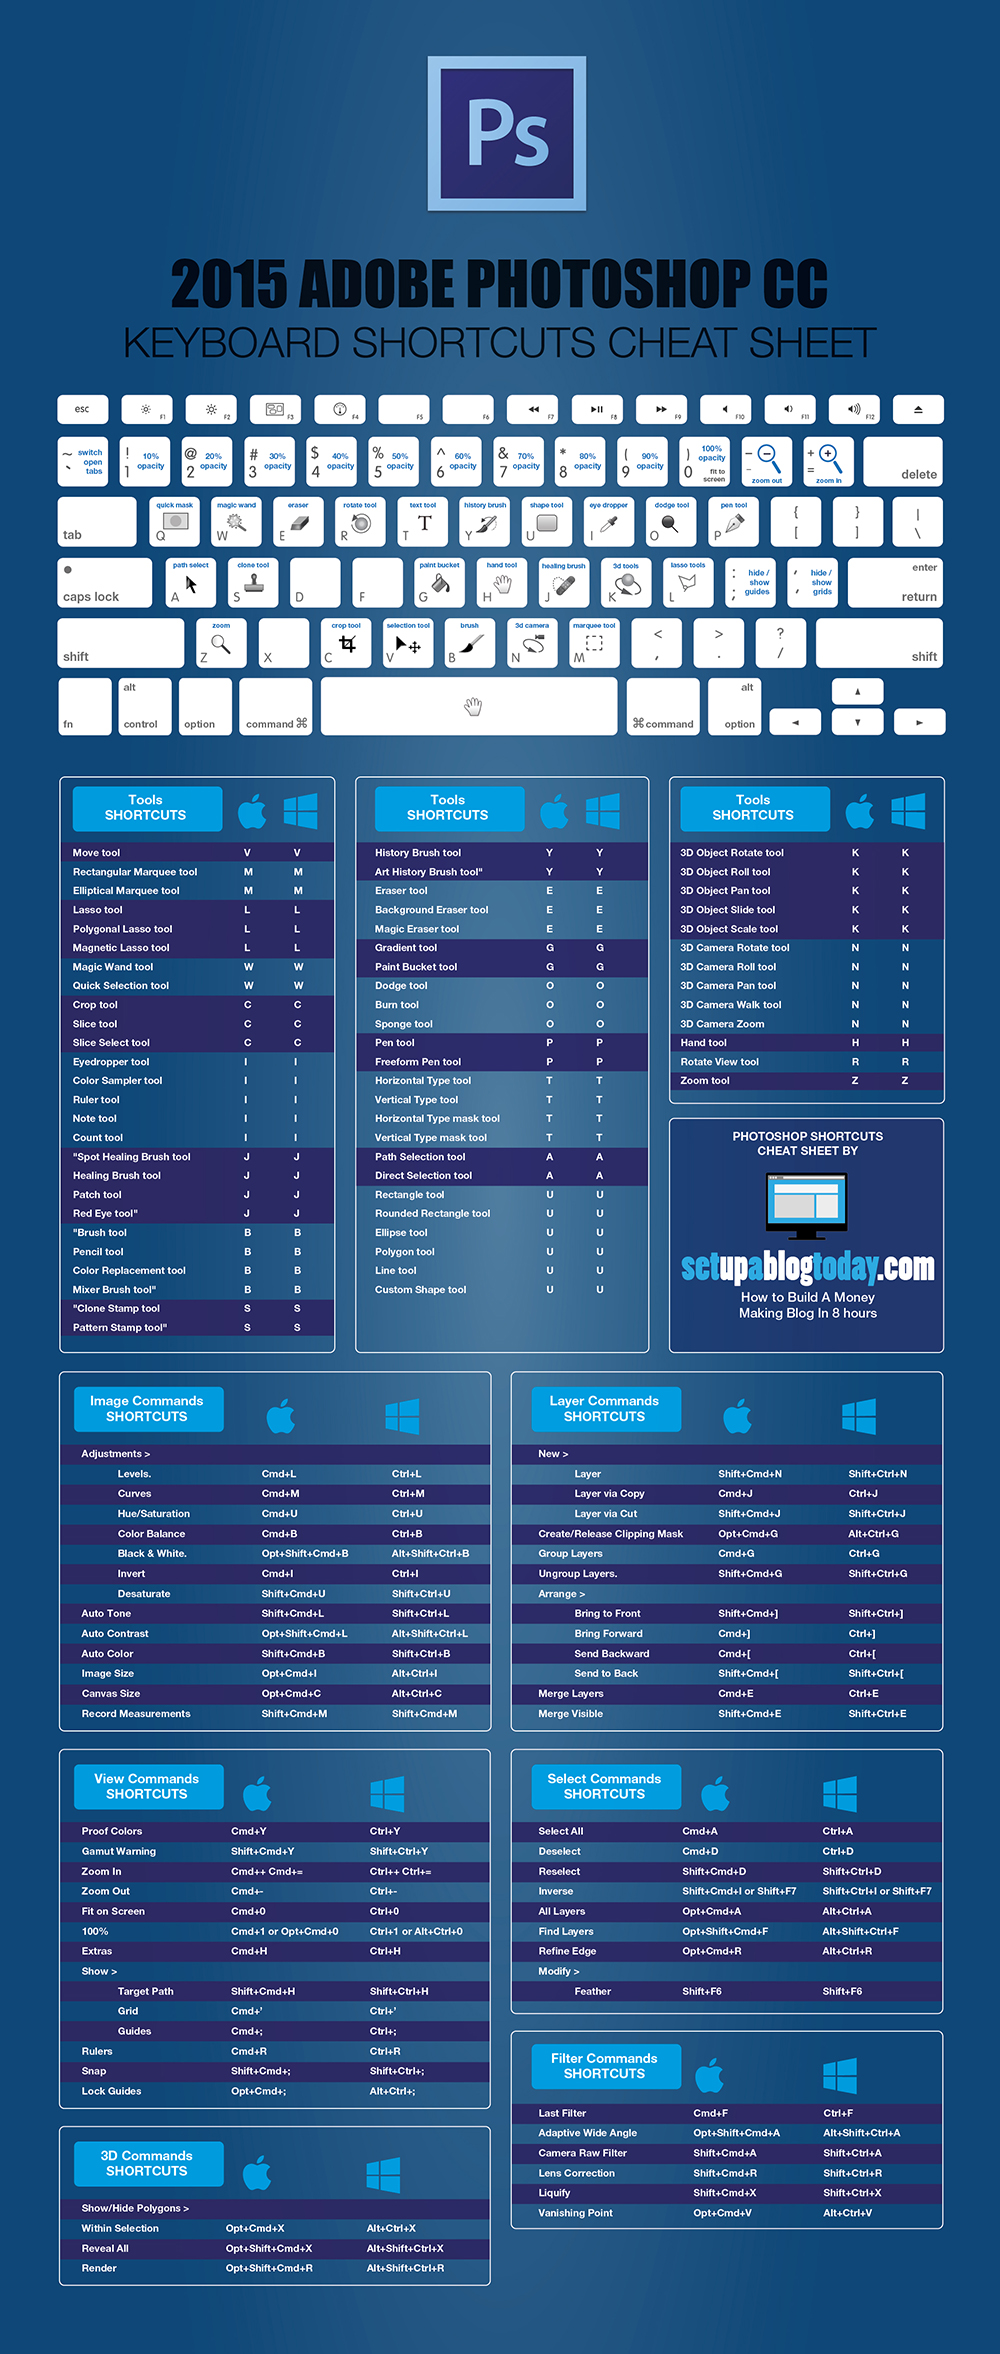 2015-adobe-photoshop-keyboard-shortcuts-cheat-sheet.jpg